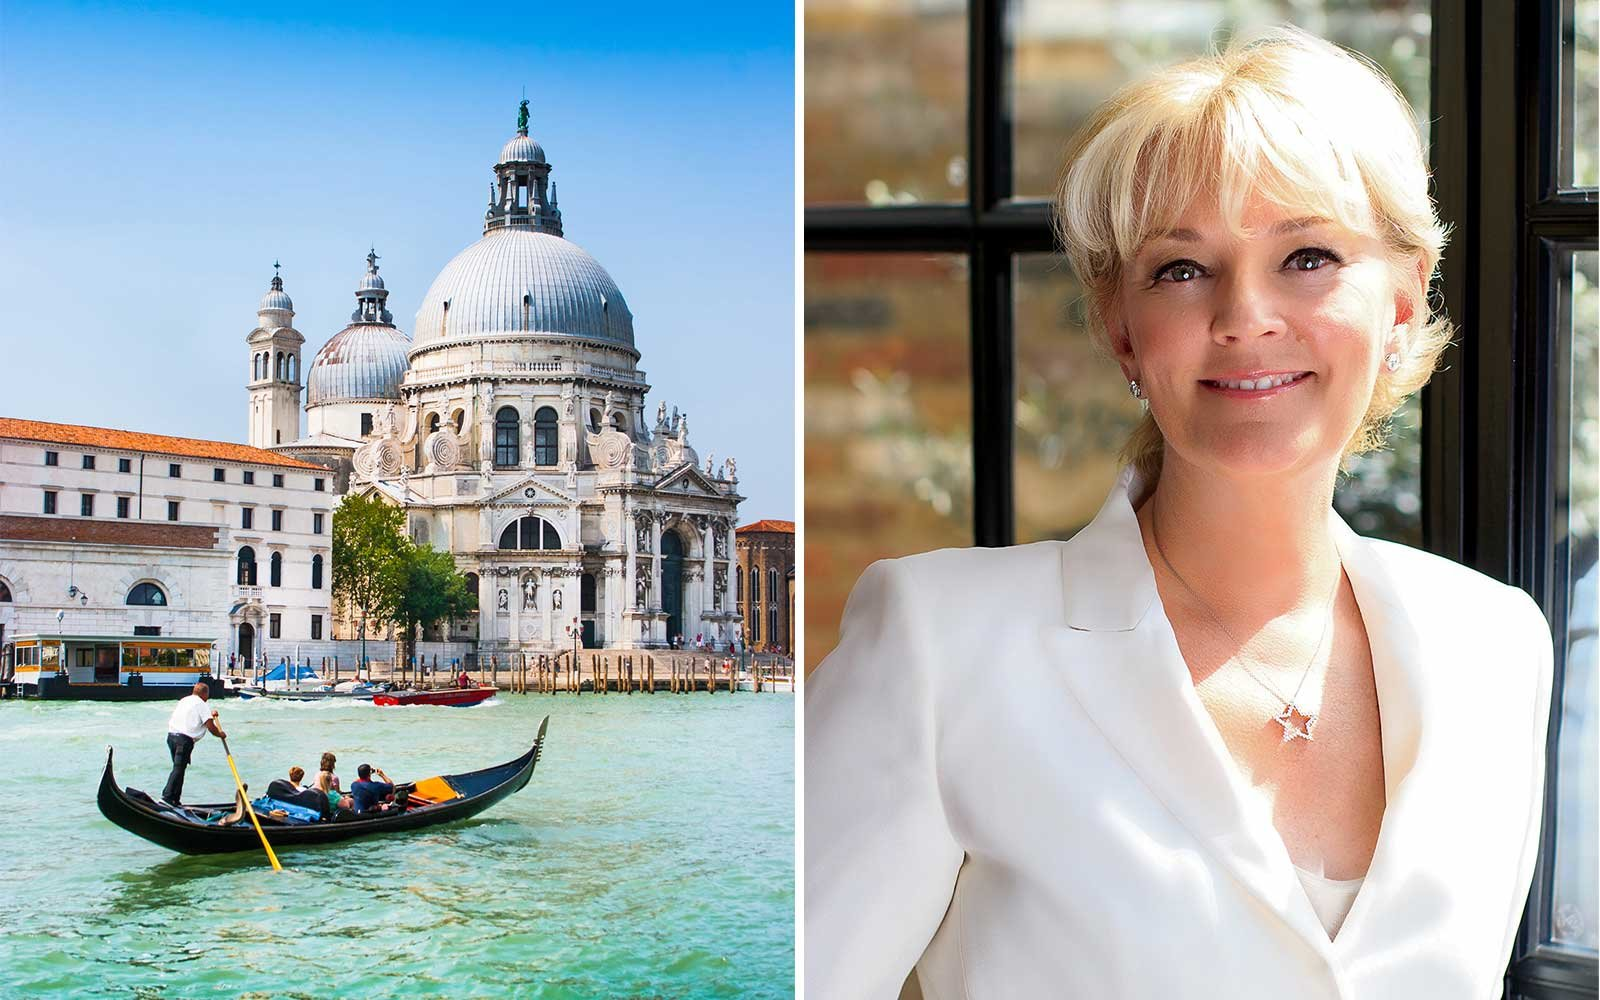 Jo Malone talks about her trip to Venice, Italy